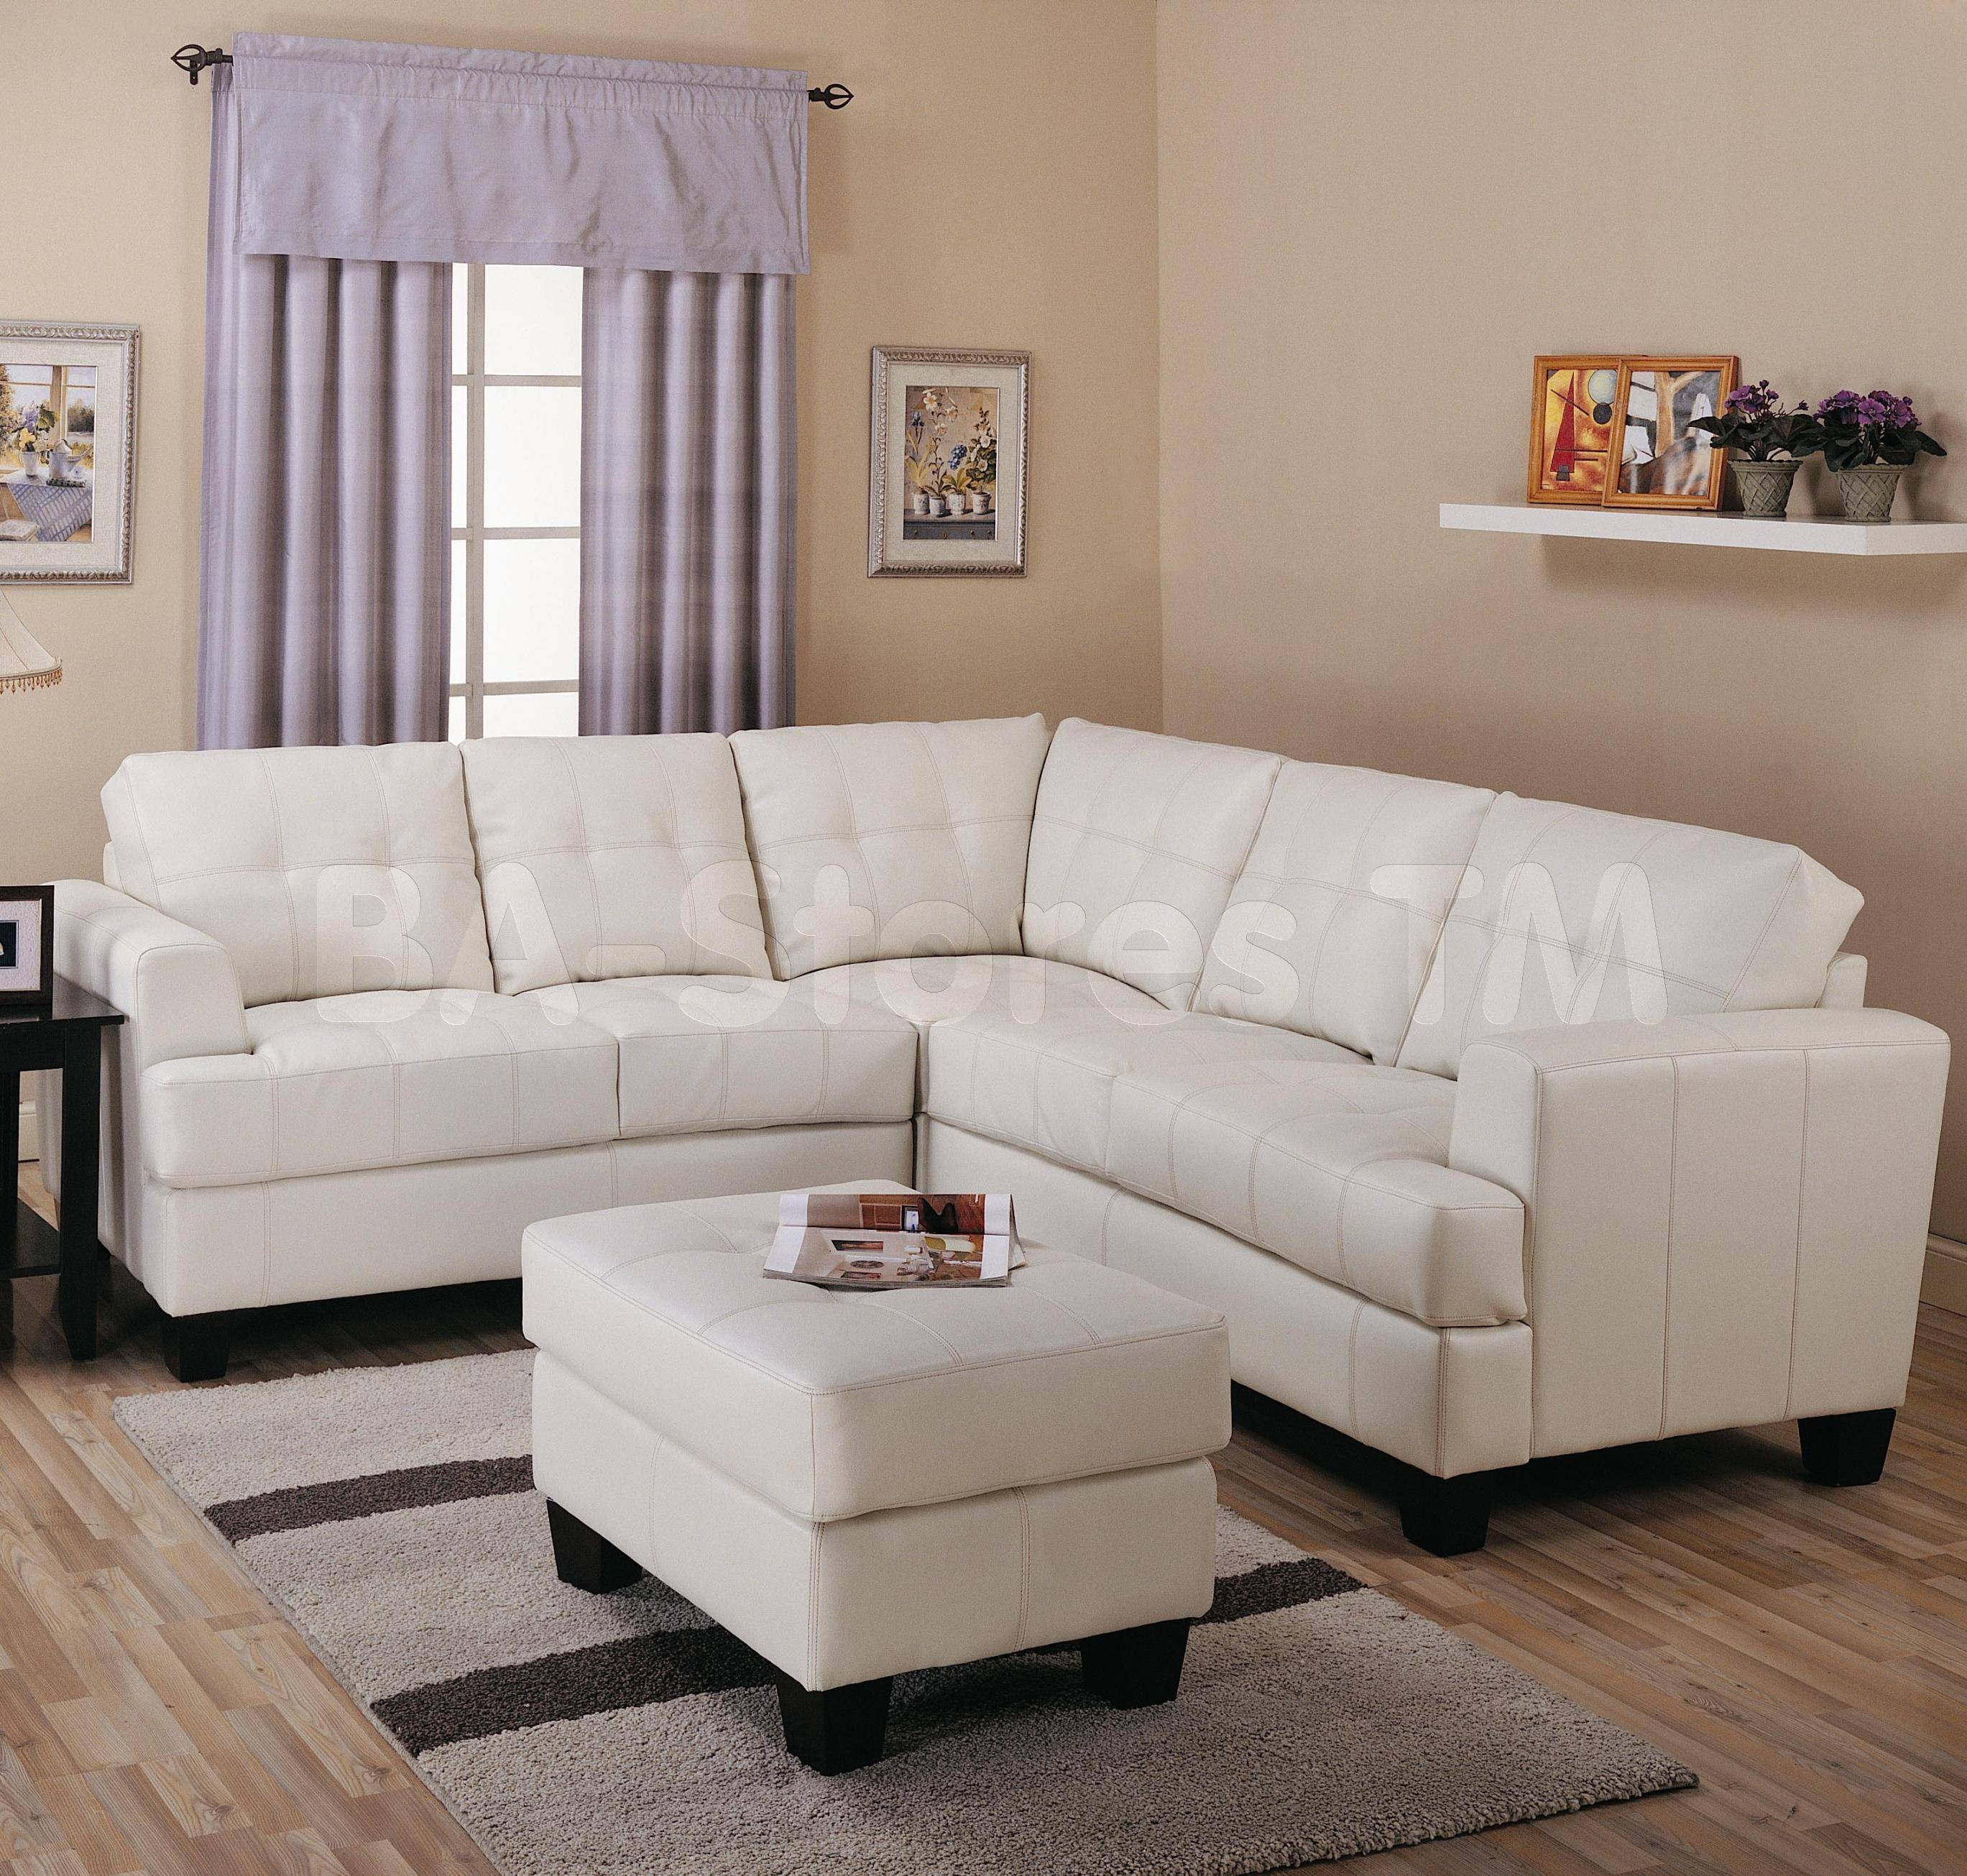 Cream Leather Sofa And Loveseat | Tehranmix Decoration within Off White Leather Sofa And Loveseat (Image 3 of 30)